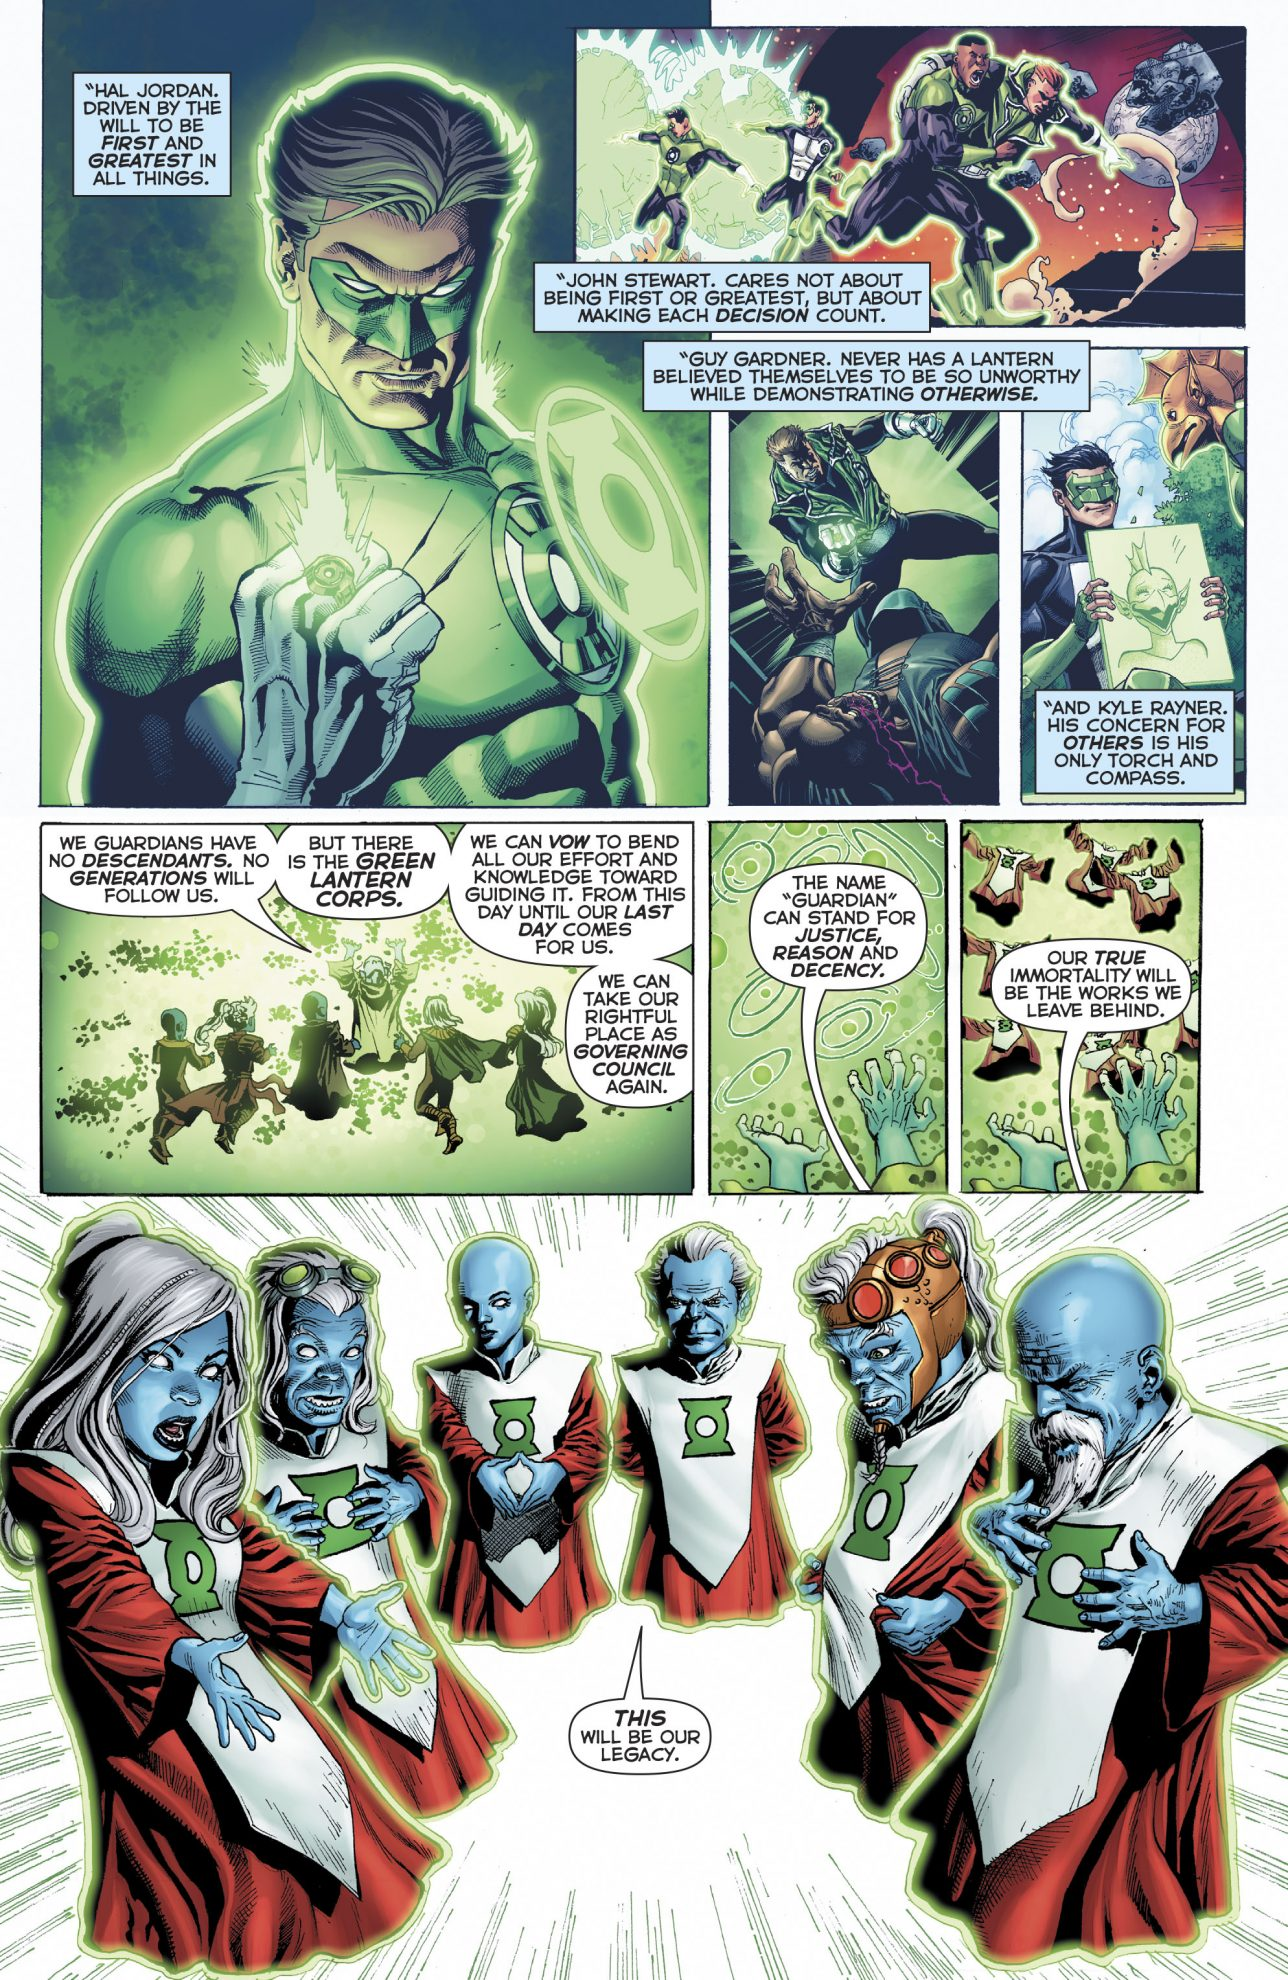 Ganthet Reforms The Guardians Of The Universe